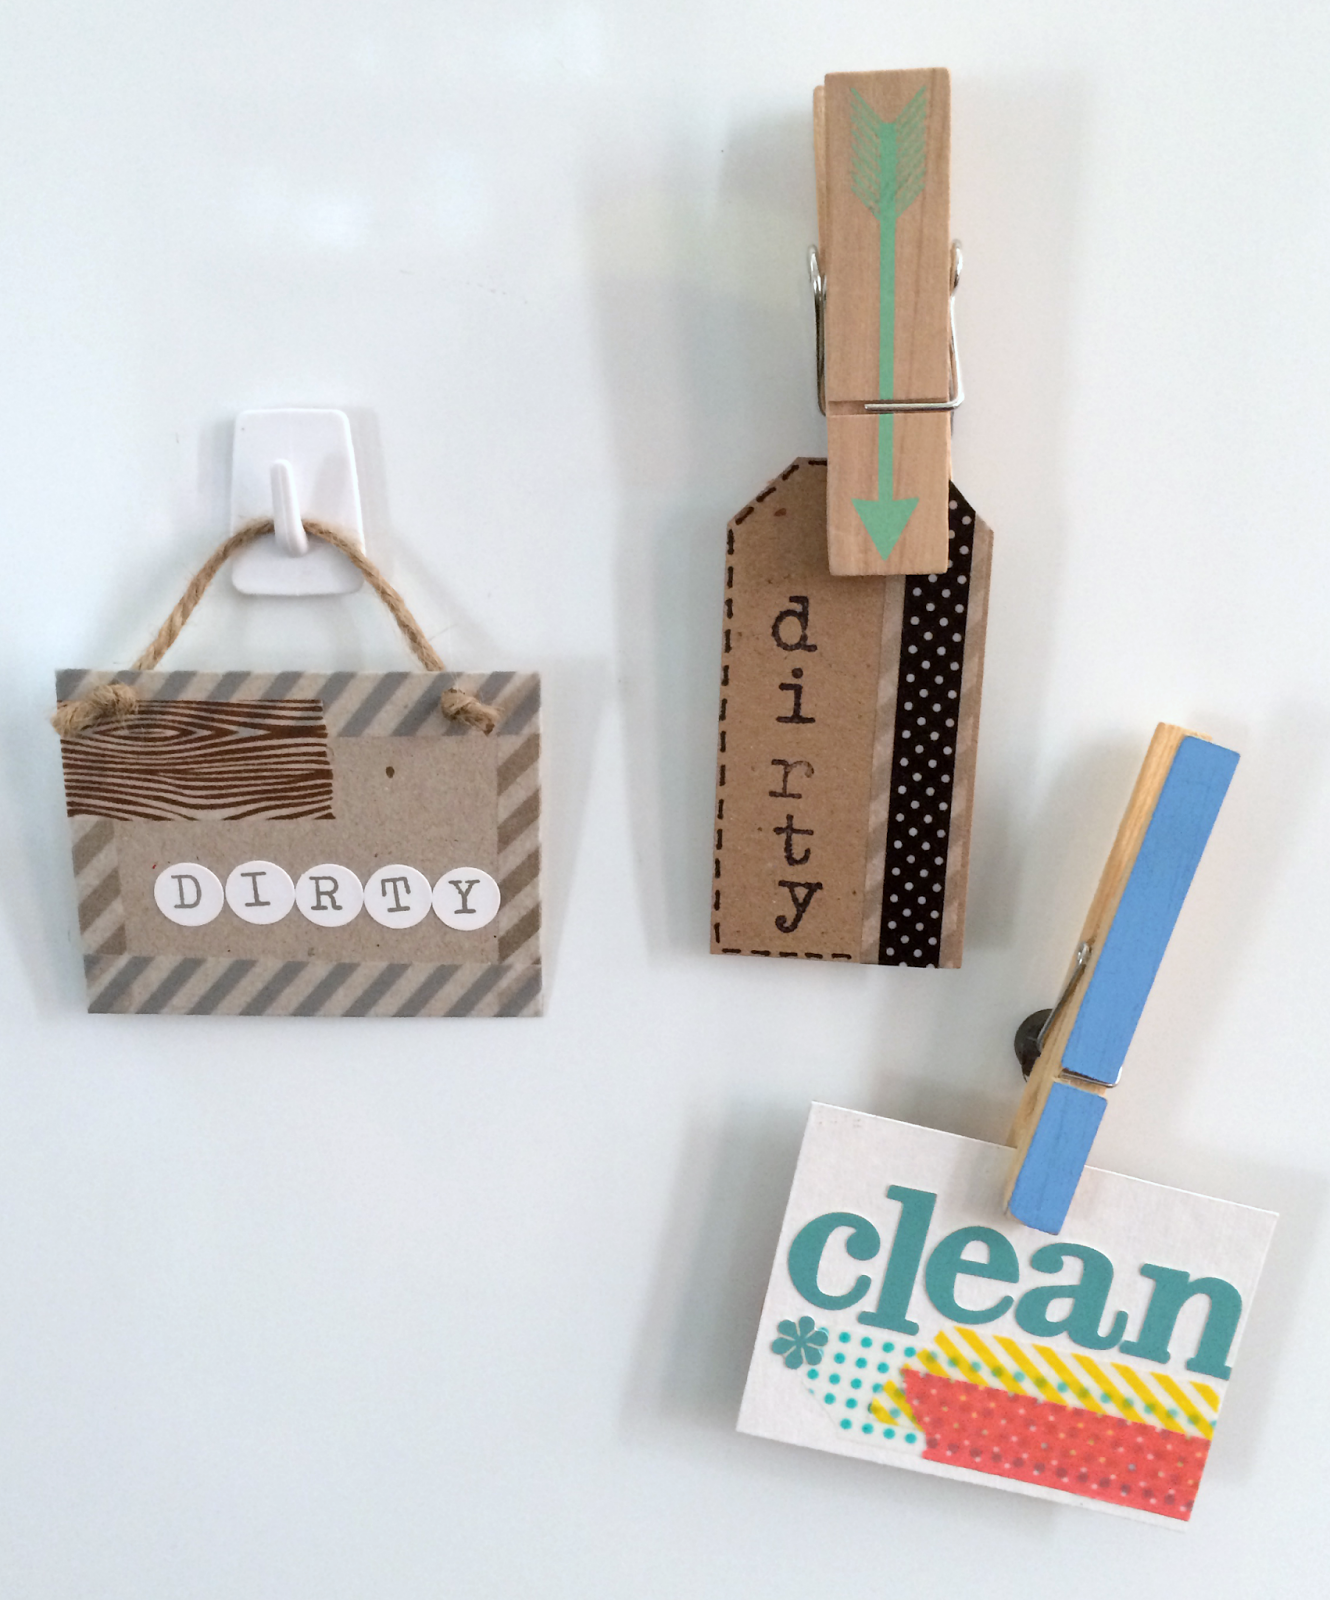 Buy magnets for crafts - Quick Craft Dirty Clean Dishwasher Magnets Really Cute Signs For The Dishwasher